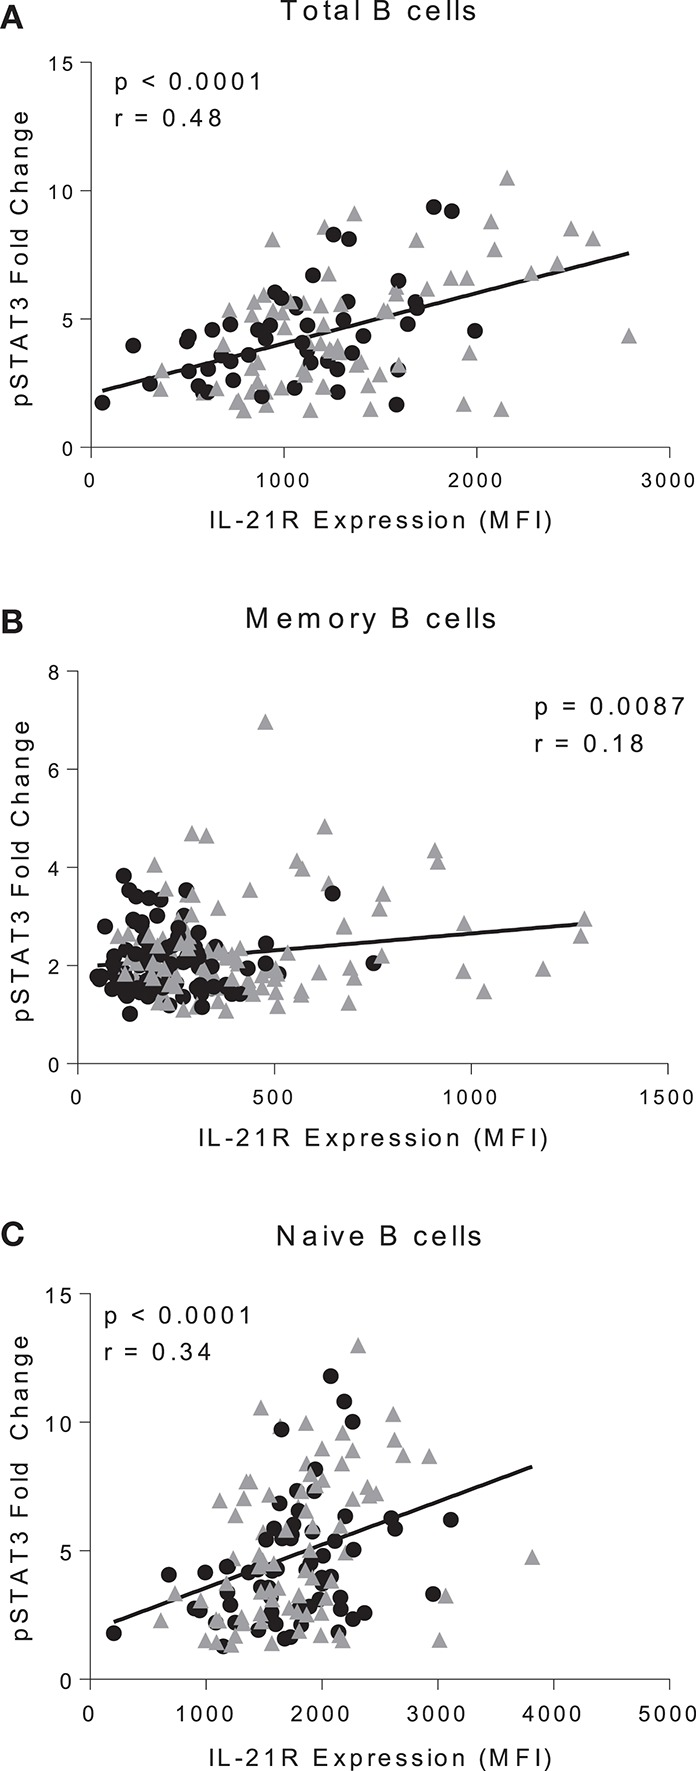 IL-21R levels correlate with IL-21-mediated pSTAT3 signaling. Correlation of IL-21R expression and pSTAT3 fold change in CD20 + (A) , total memory B cells (B) , and naïve B cells (C) . pSTAT3 levels were assessed by stimulating with IL-21 for 45 min and measuring pSTAT3 gMFI with no stimulation or with stimulation. Fold change was calculated by dividing IL-21 stimulation pSTAT3 gMFI by the no stimulation pSTAT3 gMFI. As there were no differences in slope between controls and RA patients, the correlation was conducted on both controls (black circles) and RA patients (gray triangles) ( n = 116). Correlation was assessed with the Pearson correlation.